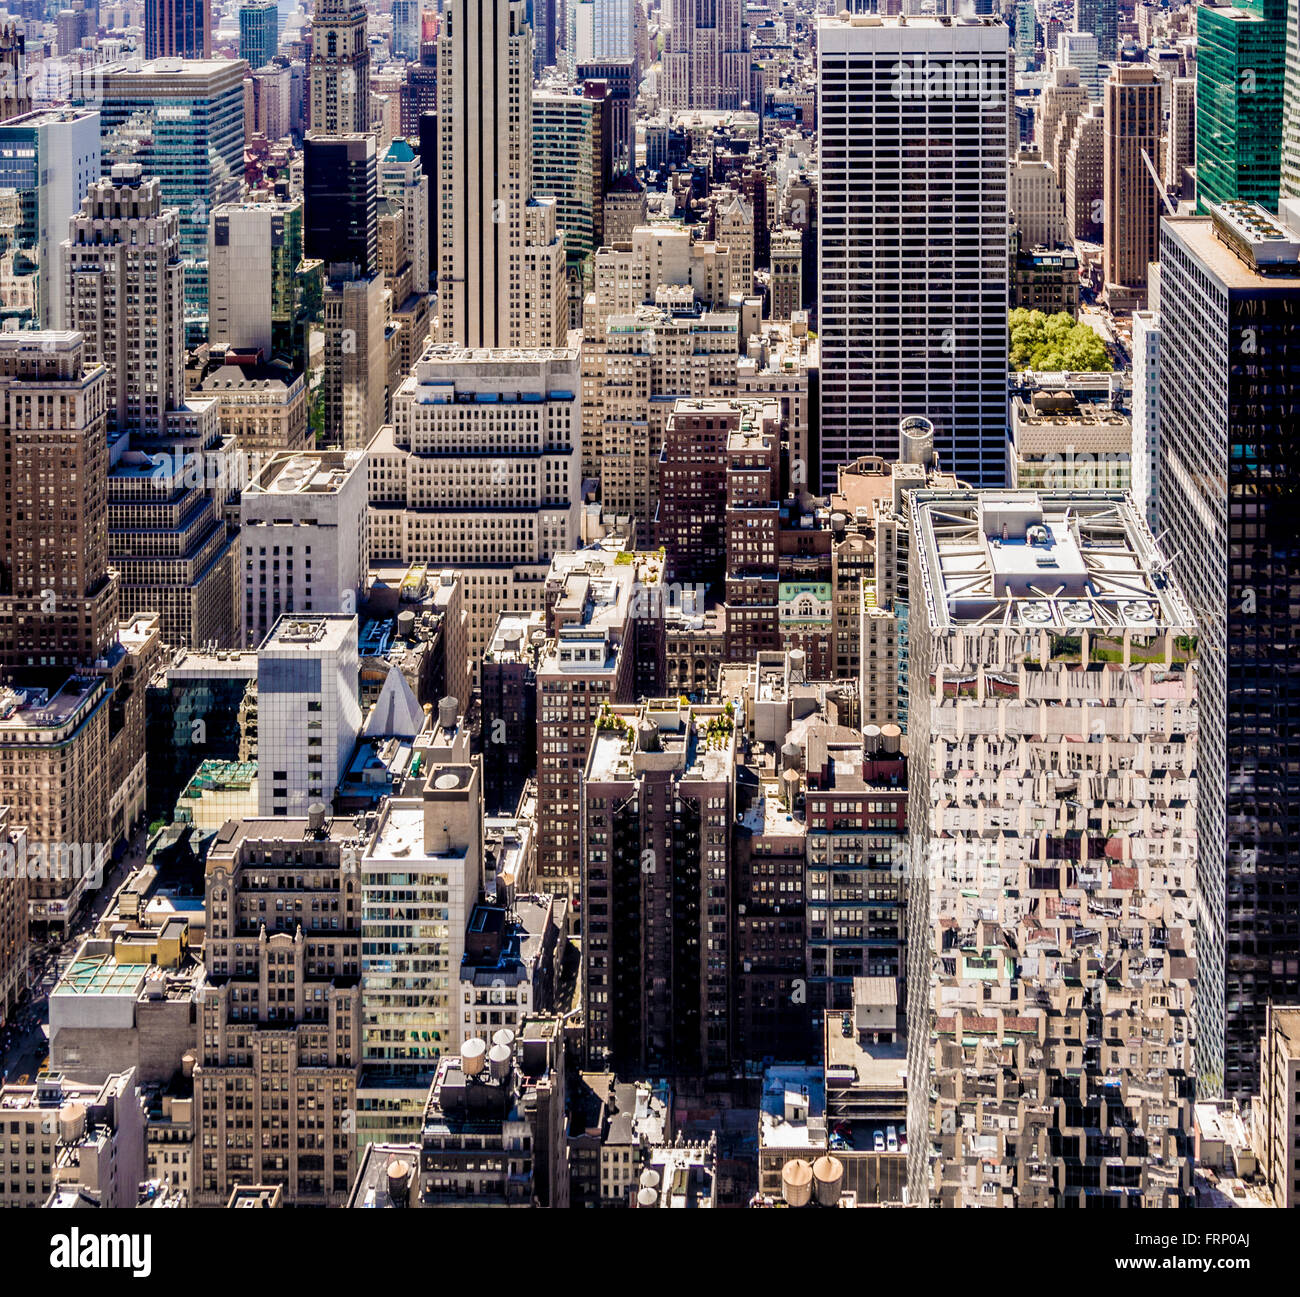 New York City buildings, USA. - Stock Image